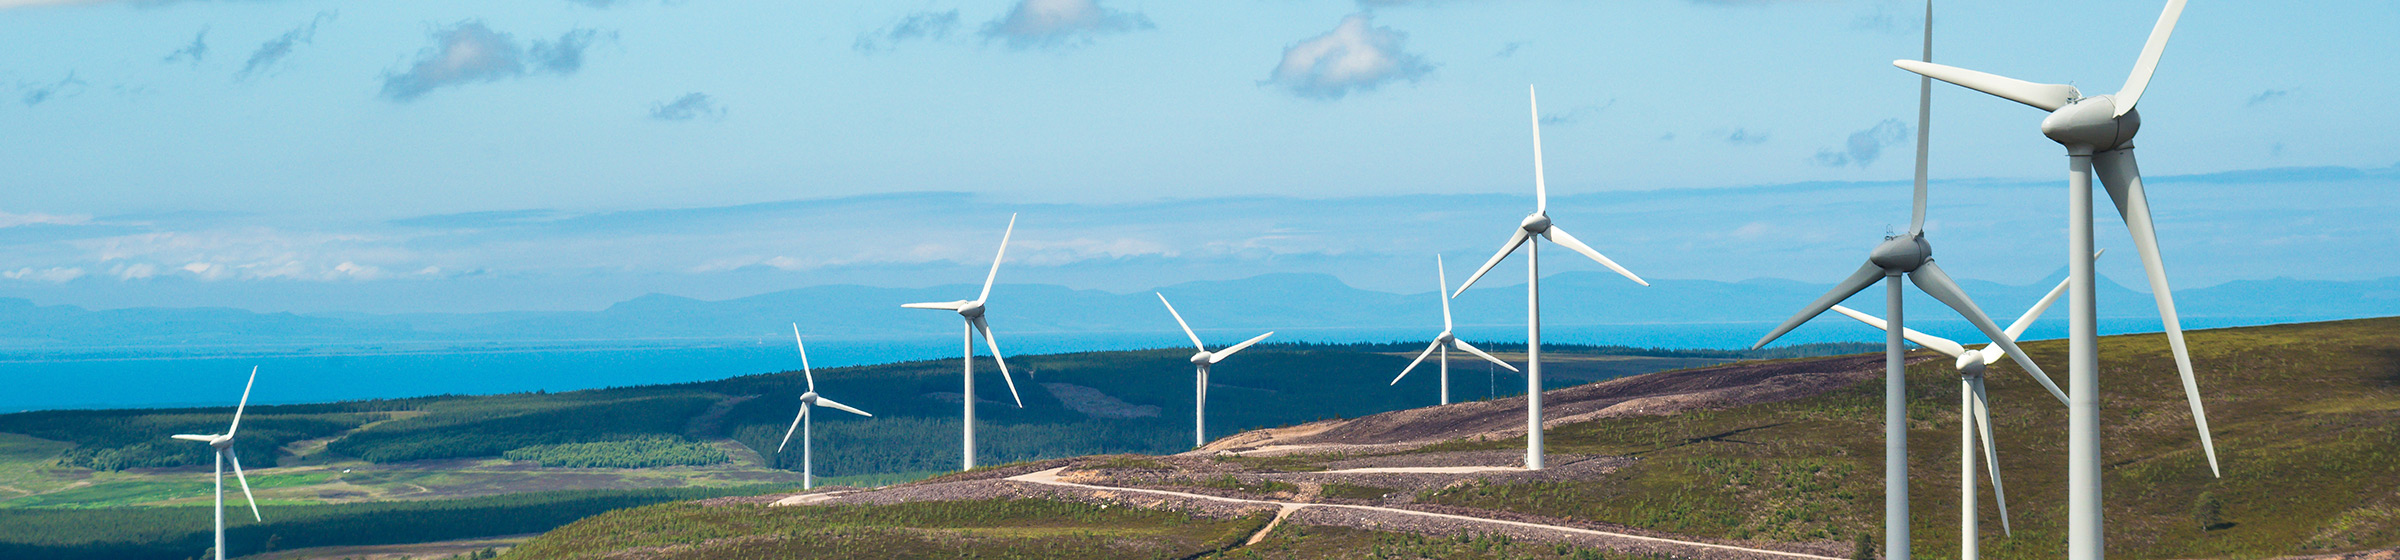 Wind farm in hilly landscape